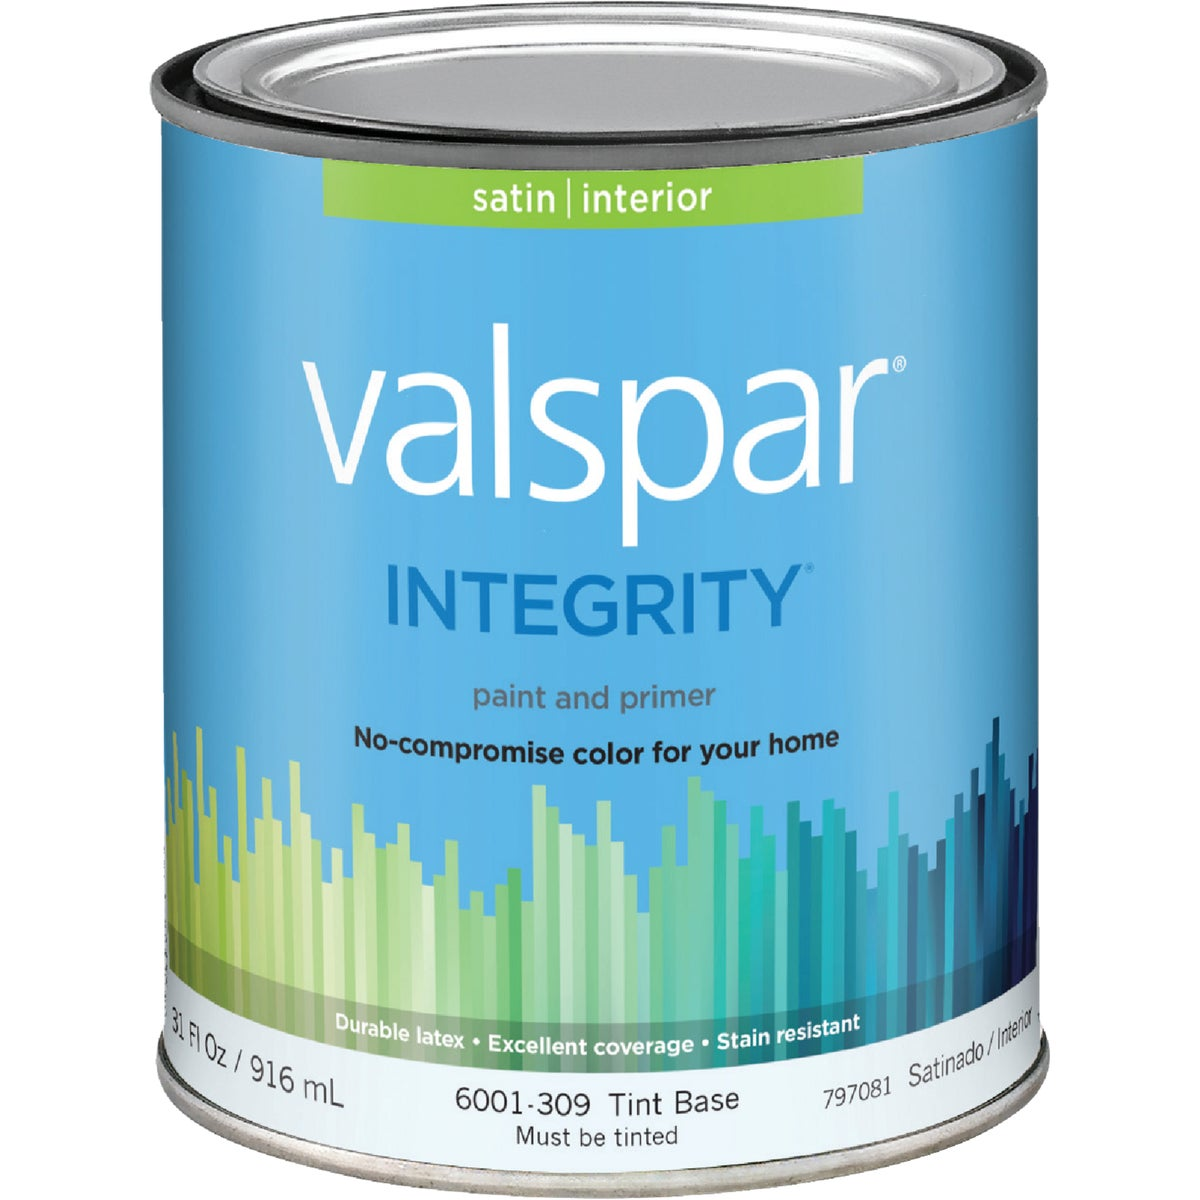 INT SAT TINT BS PAINT - 004.6001309.005 by Valspar Corp